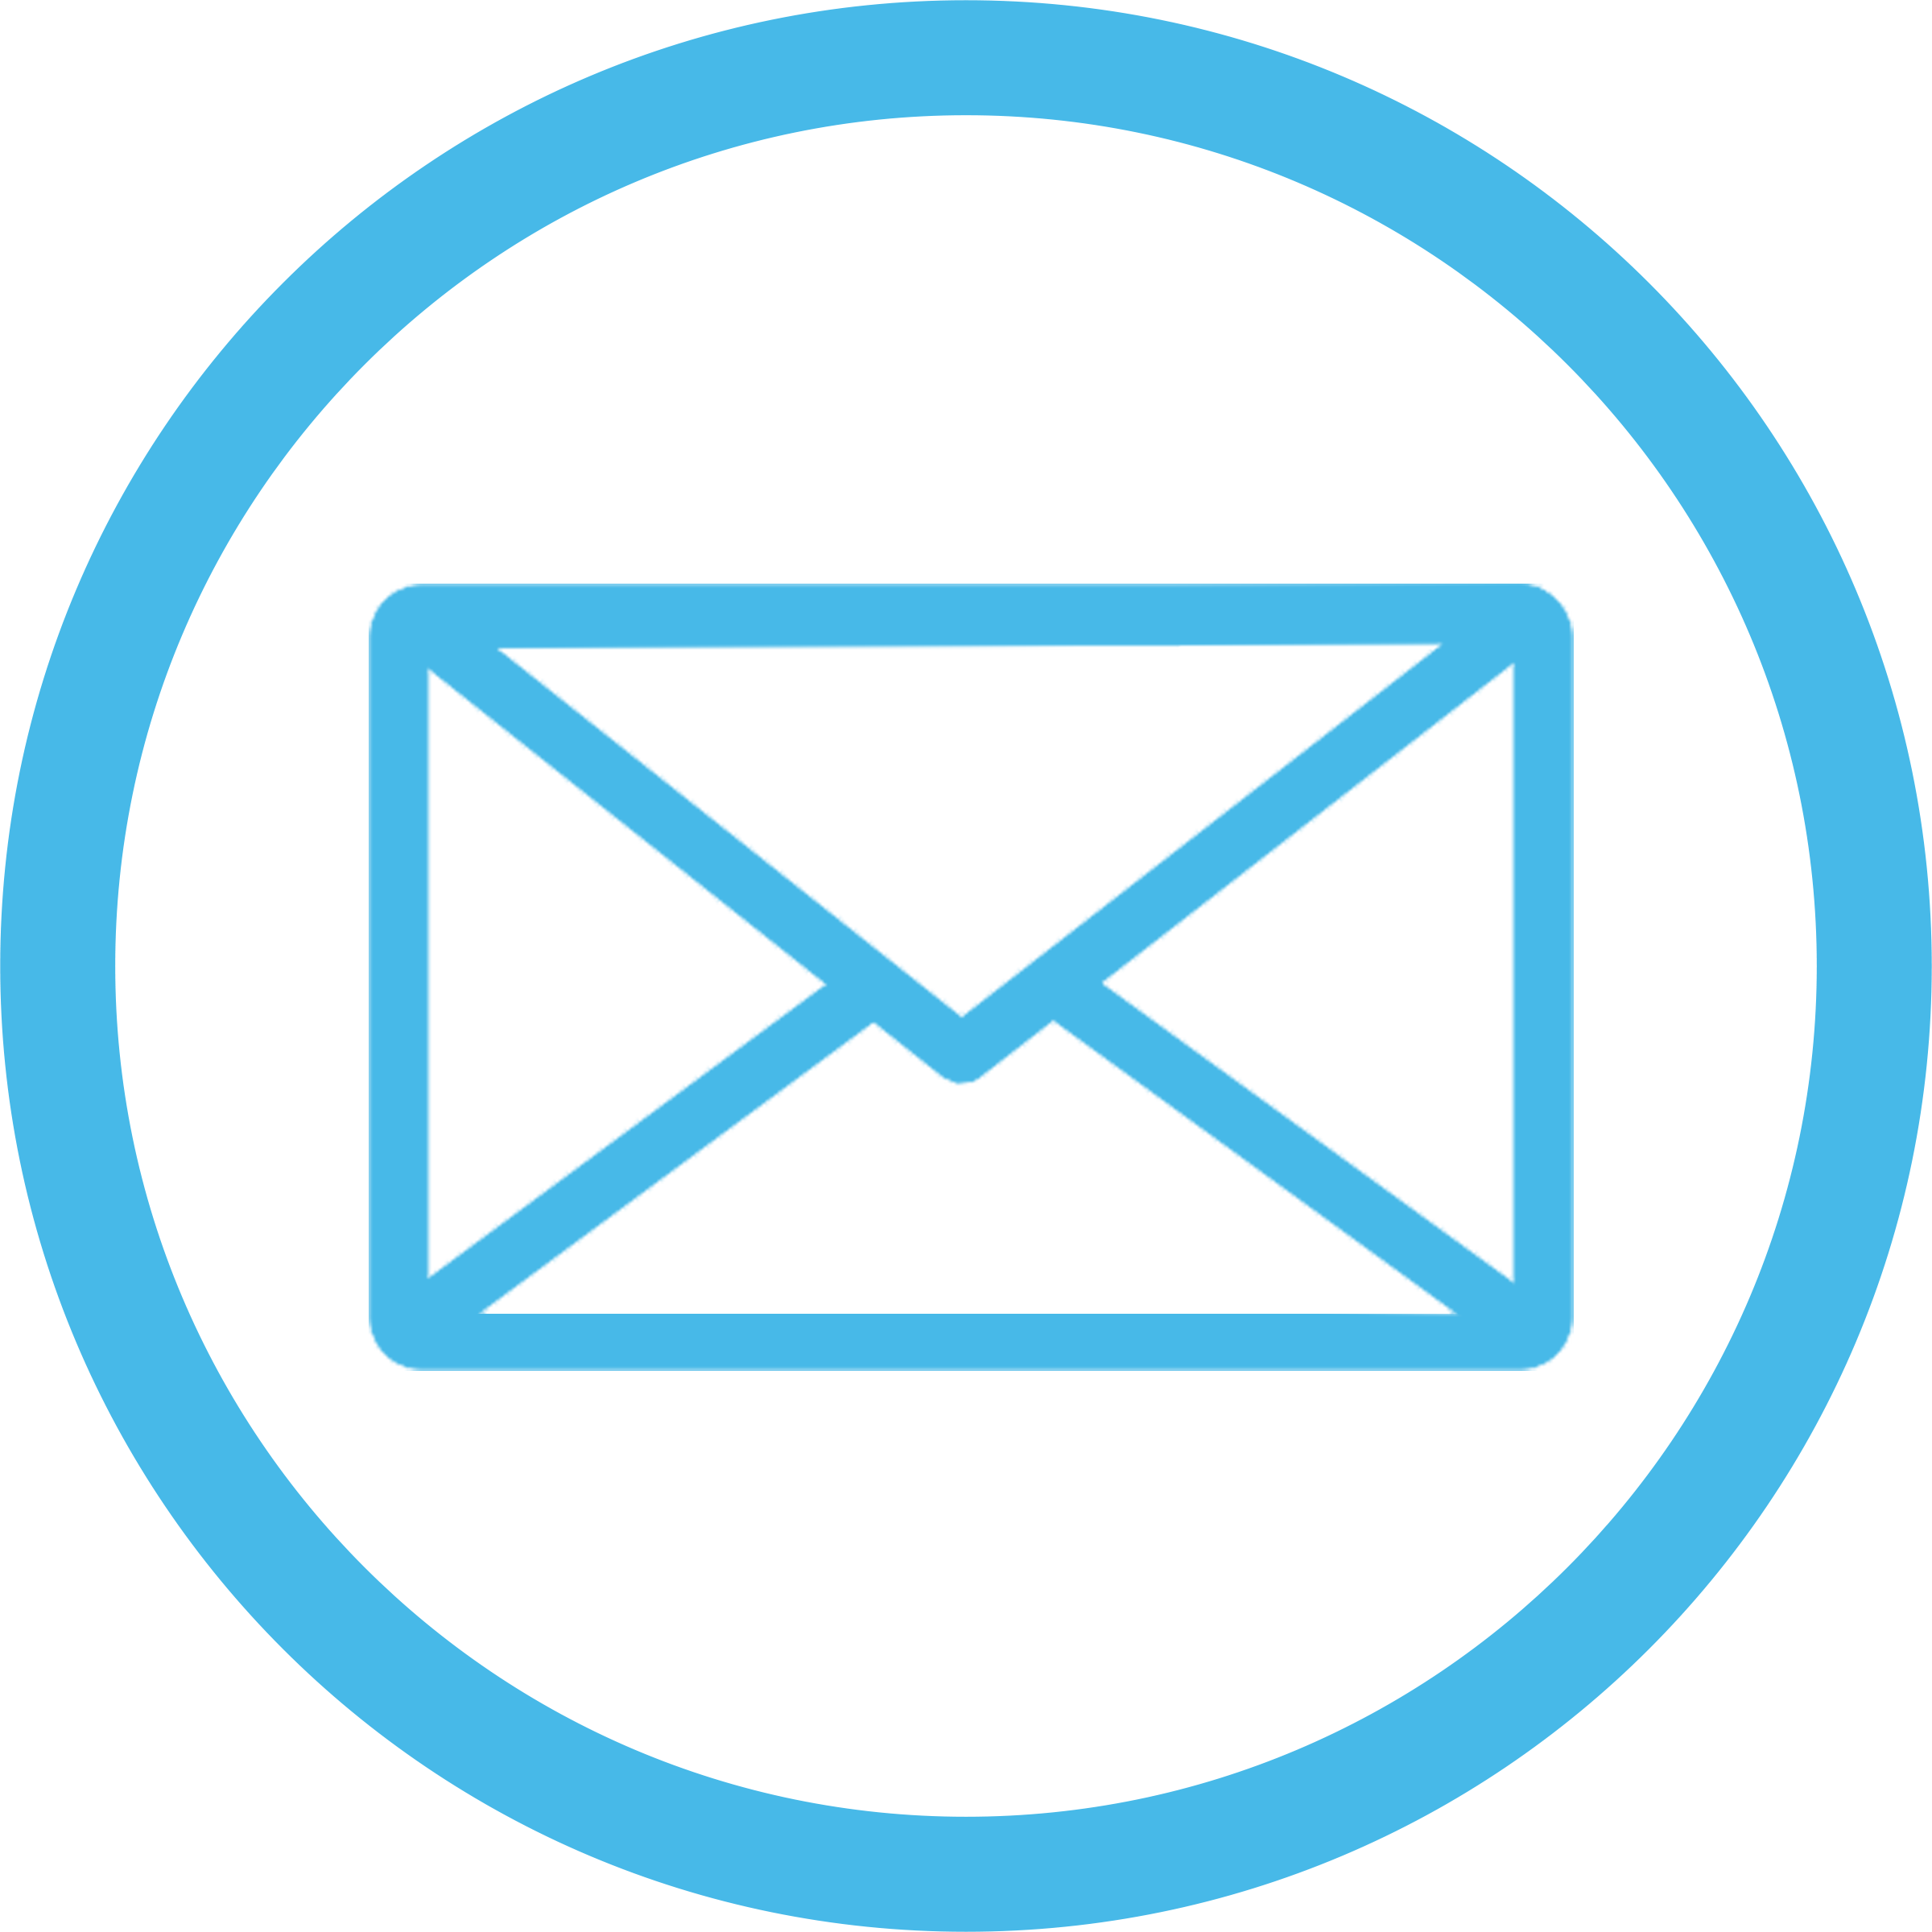 Email Icon Image #122 - Email Icon PNG